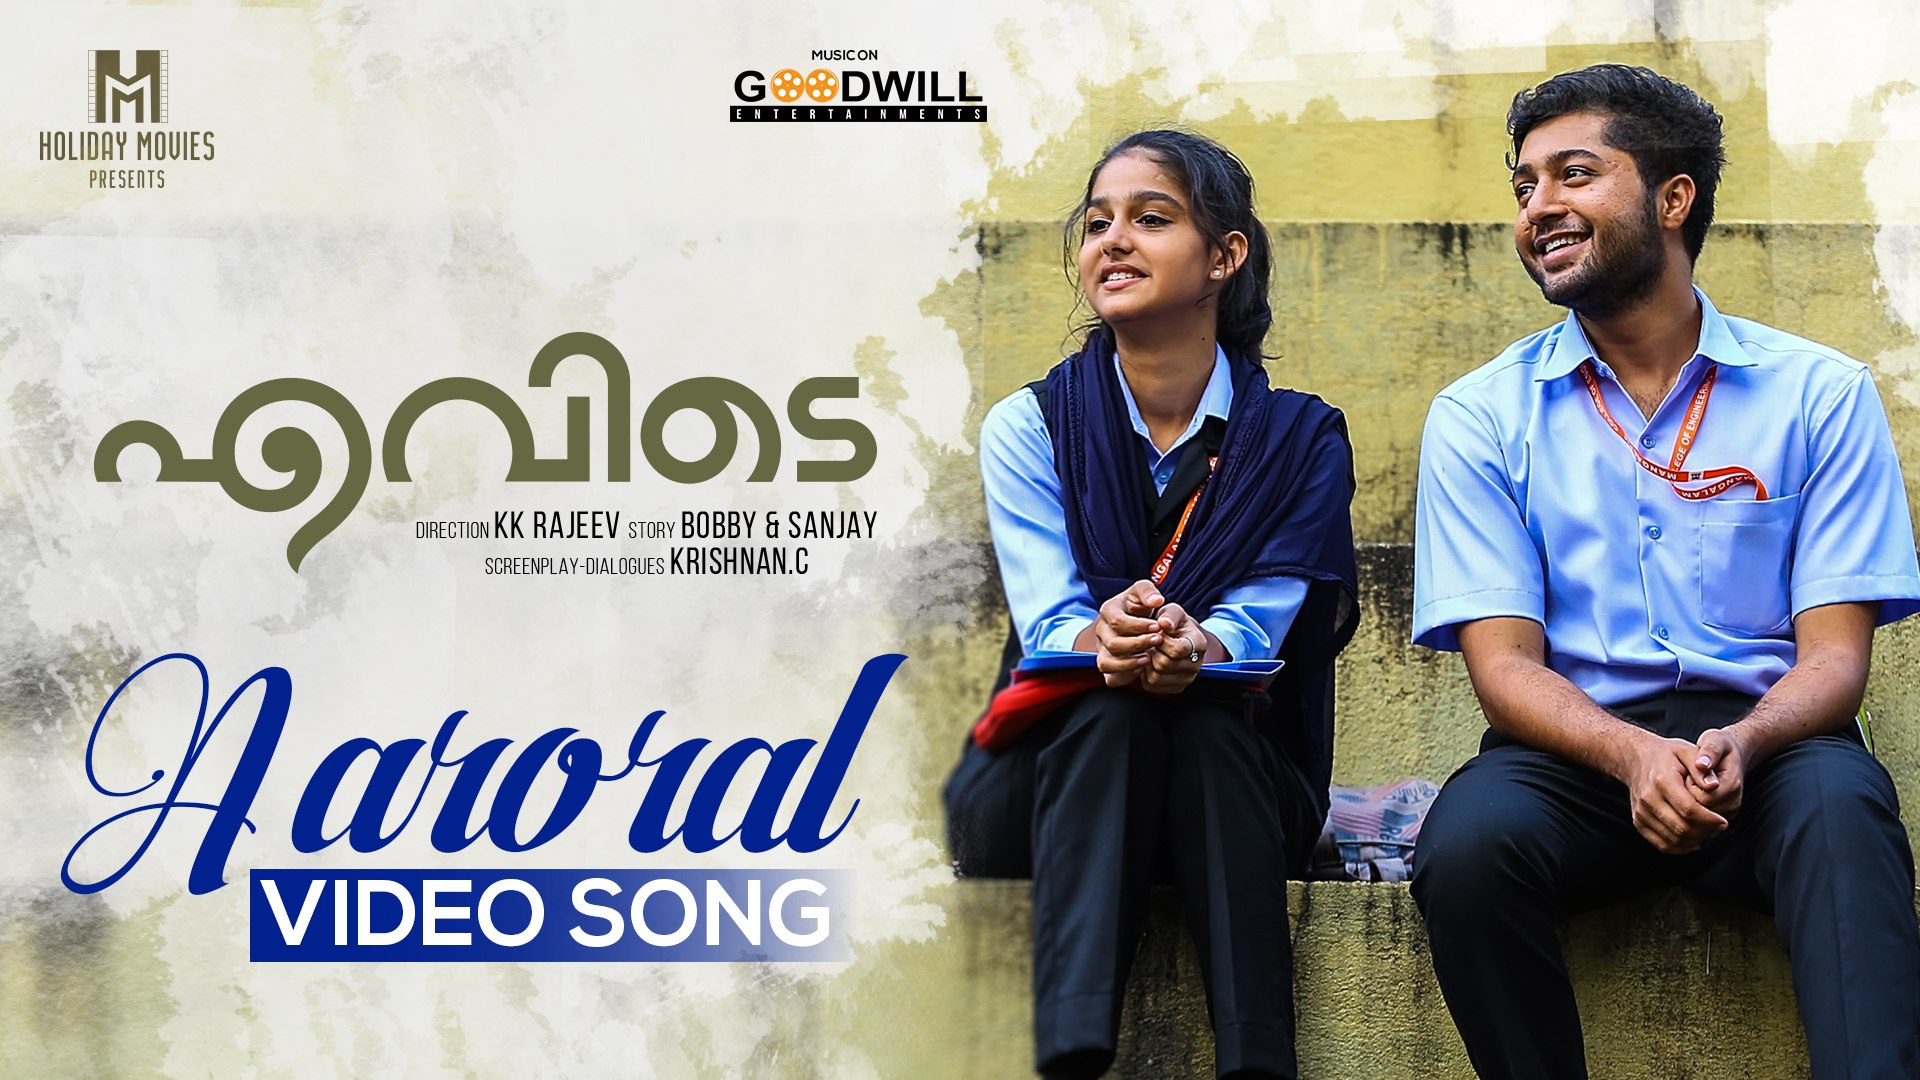 Evidey Malayalam Movie | Aaroral Video Song | Ouseppachan | Harisankar | Bobby & Sanjay | KK Raj